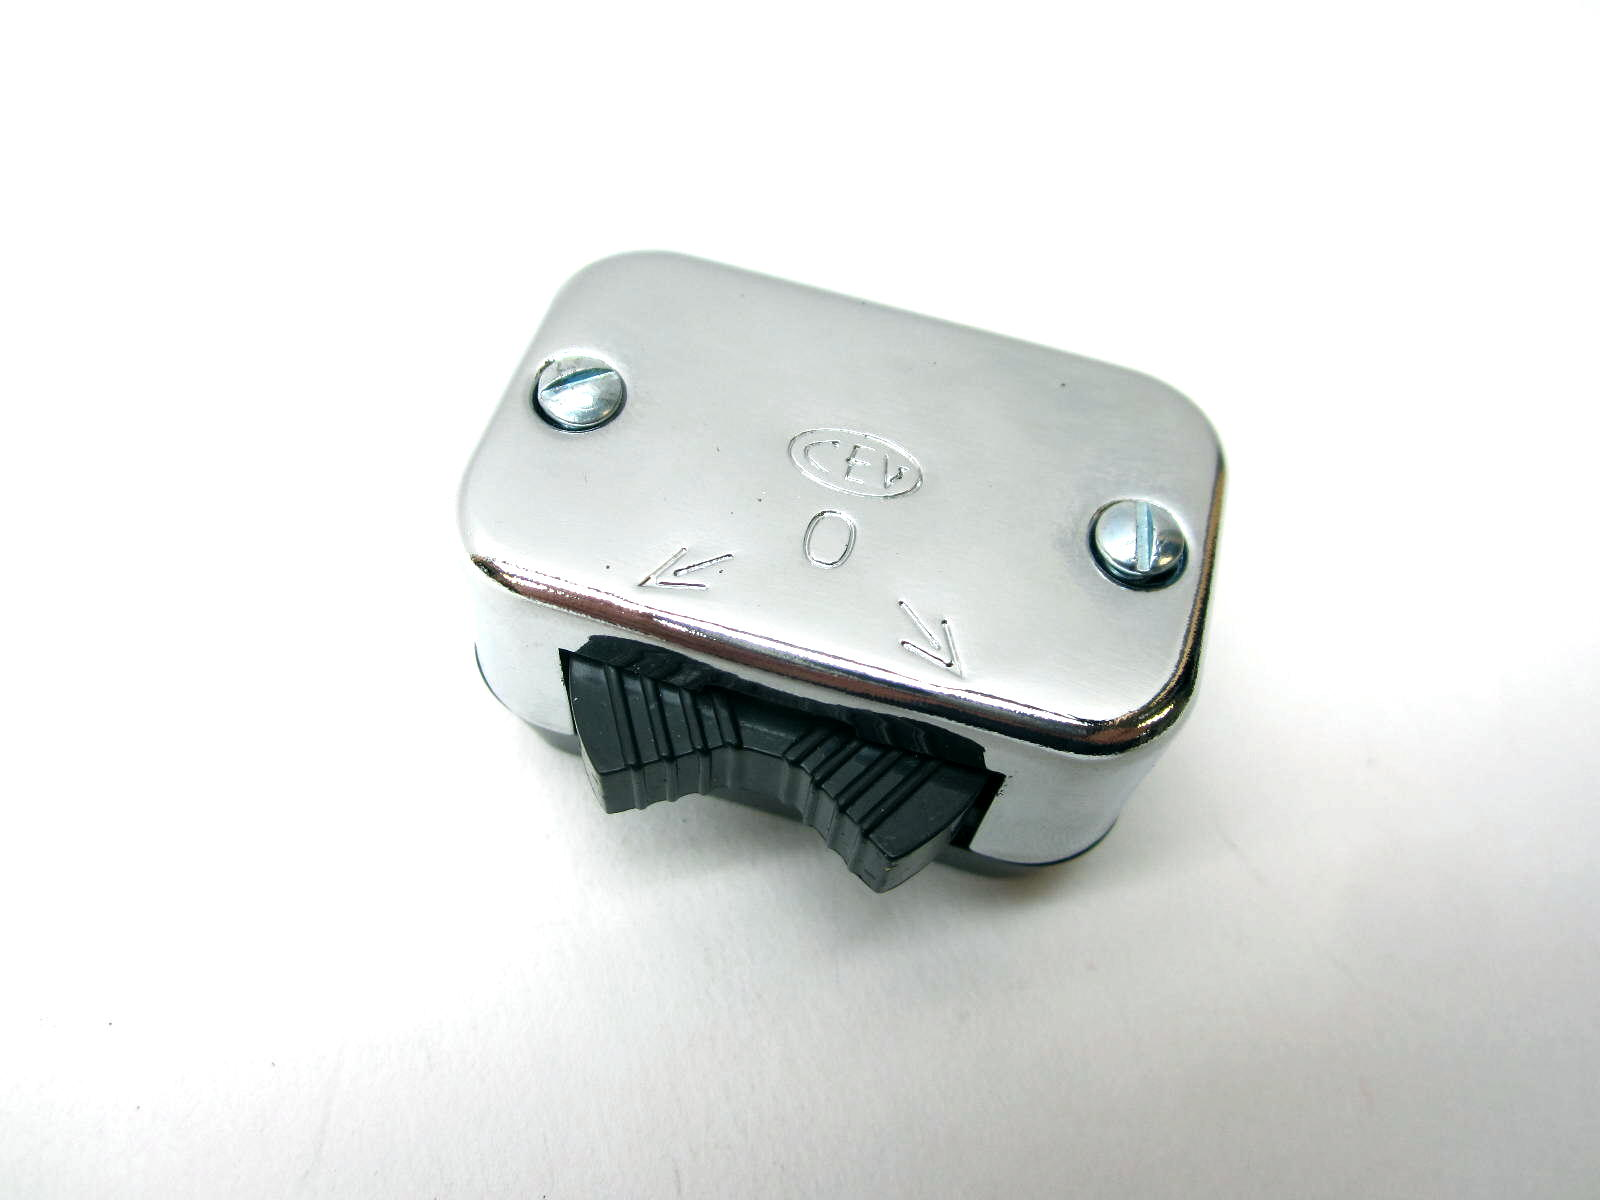 turn signal switch, V700 Ambassador Eldorado V7 Sport